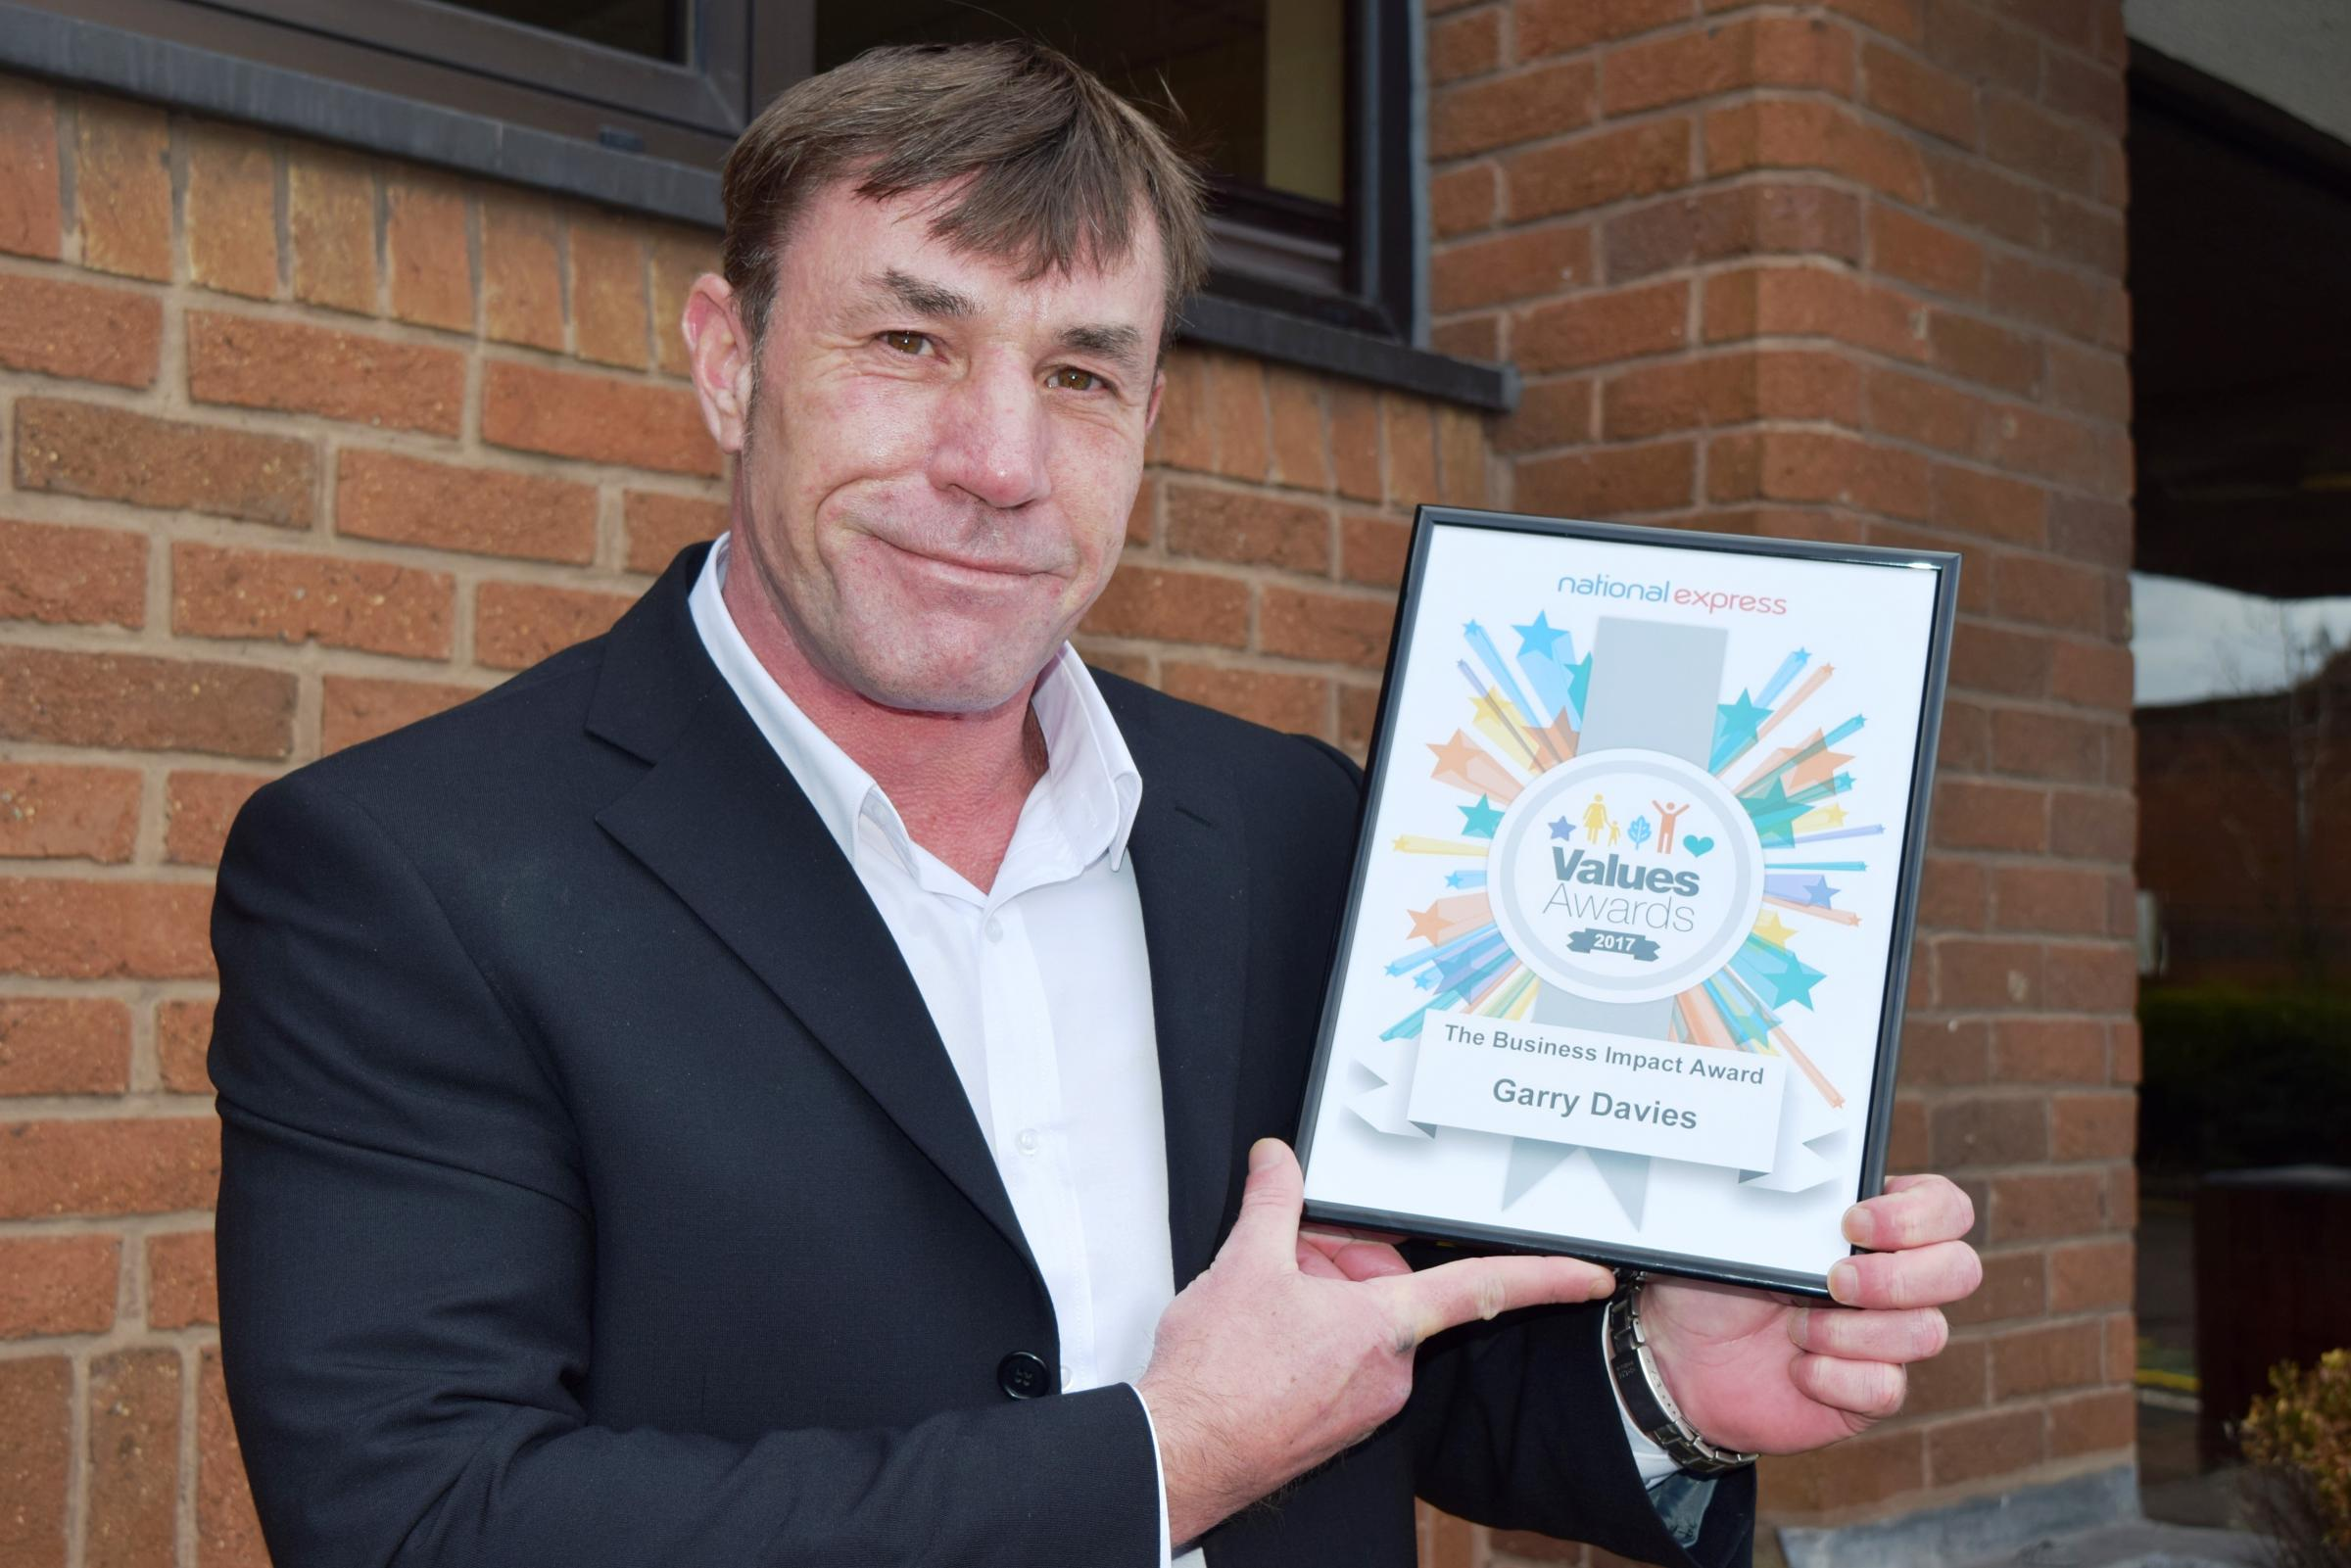 Garry Davies with his award